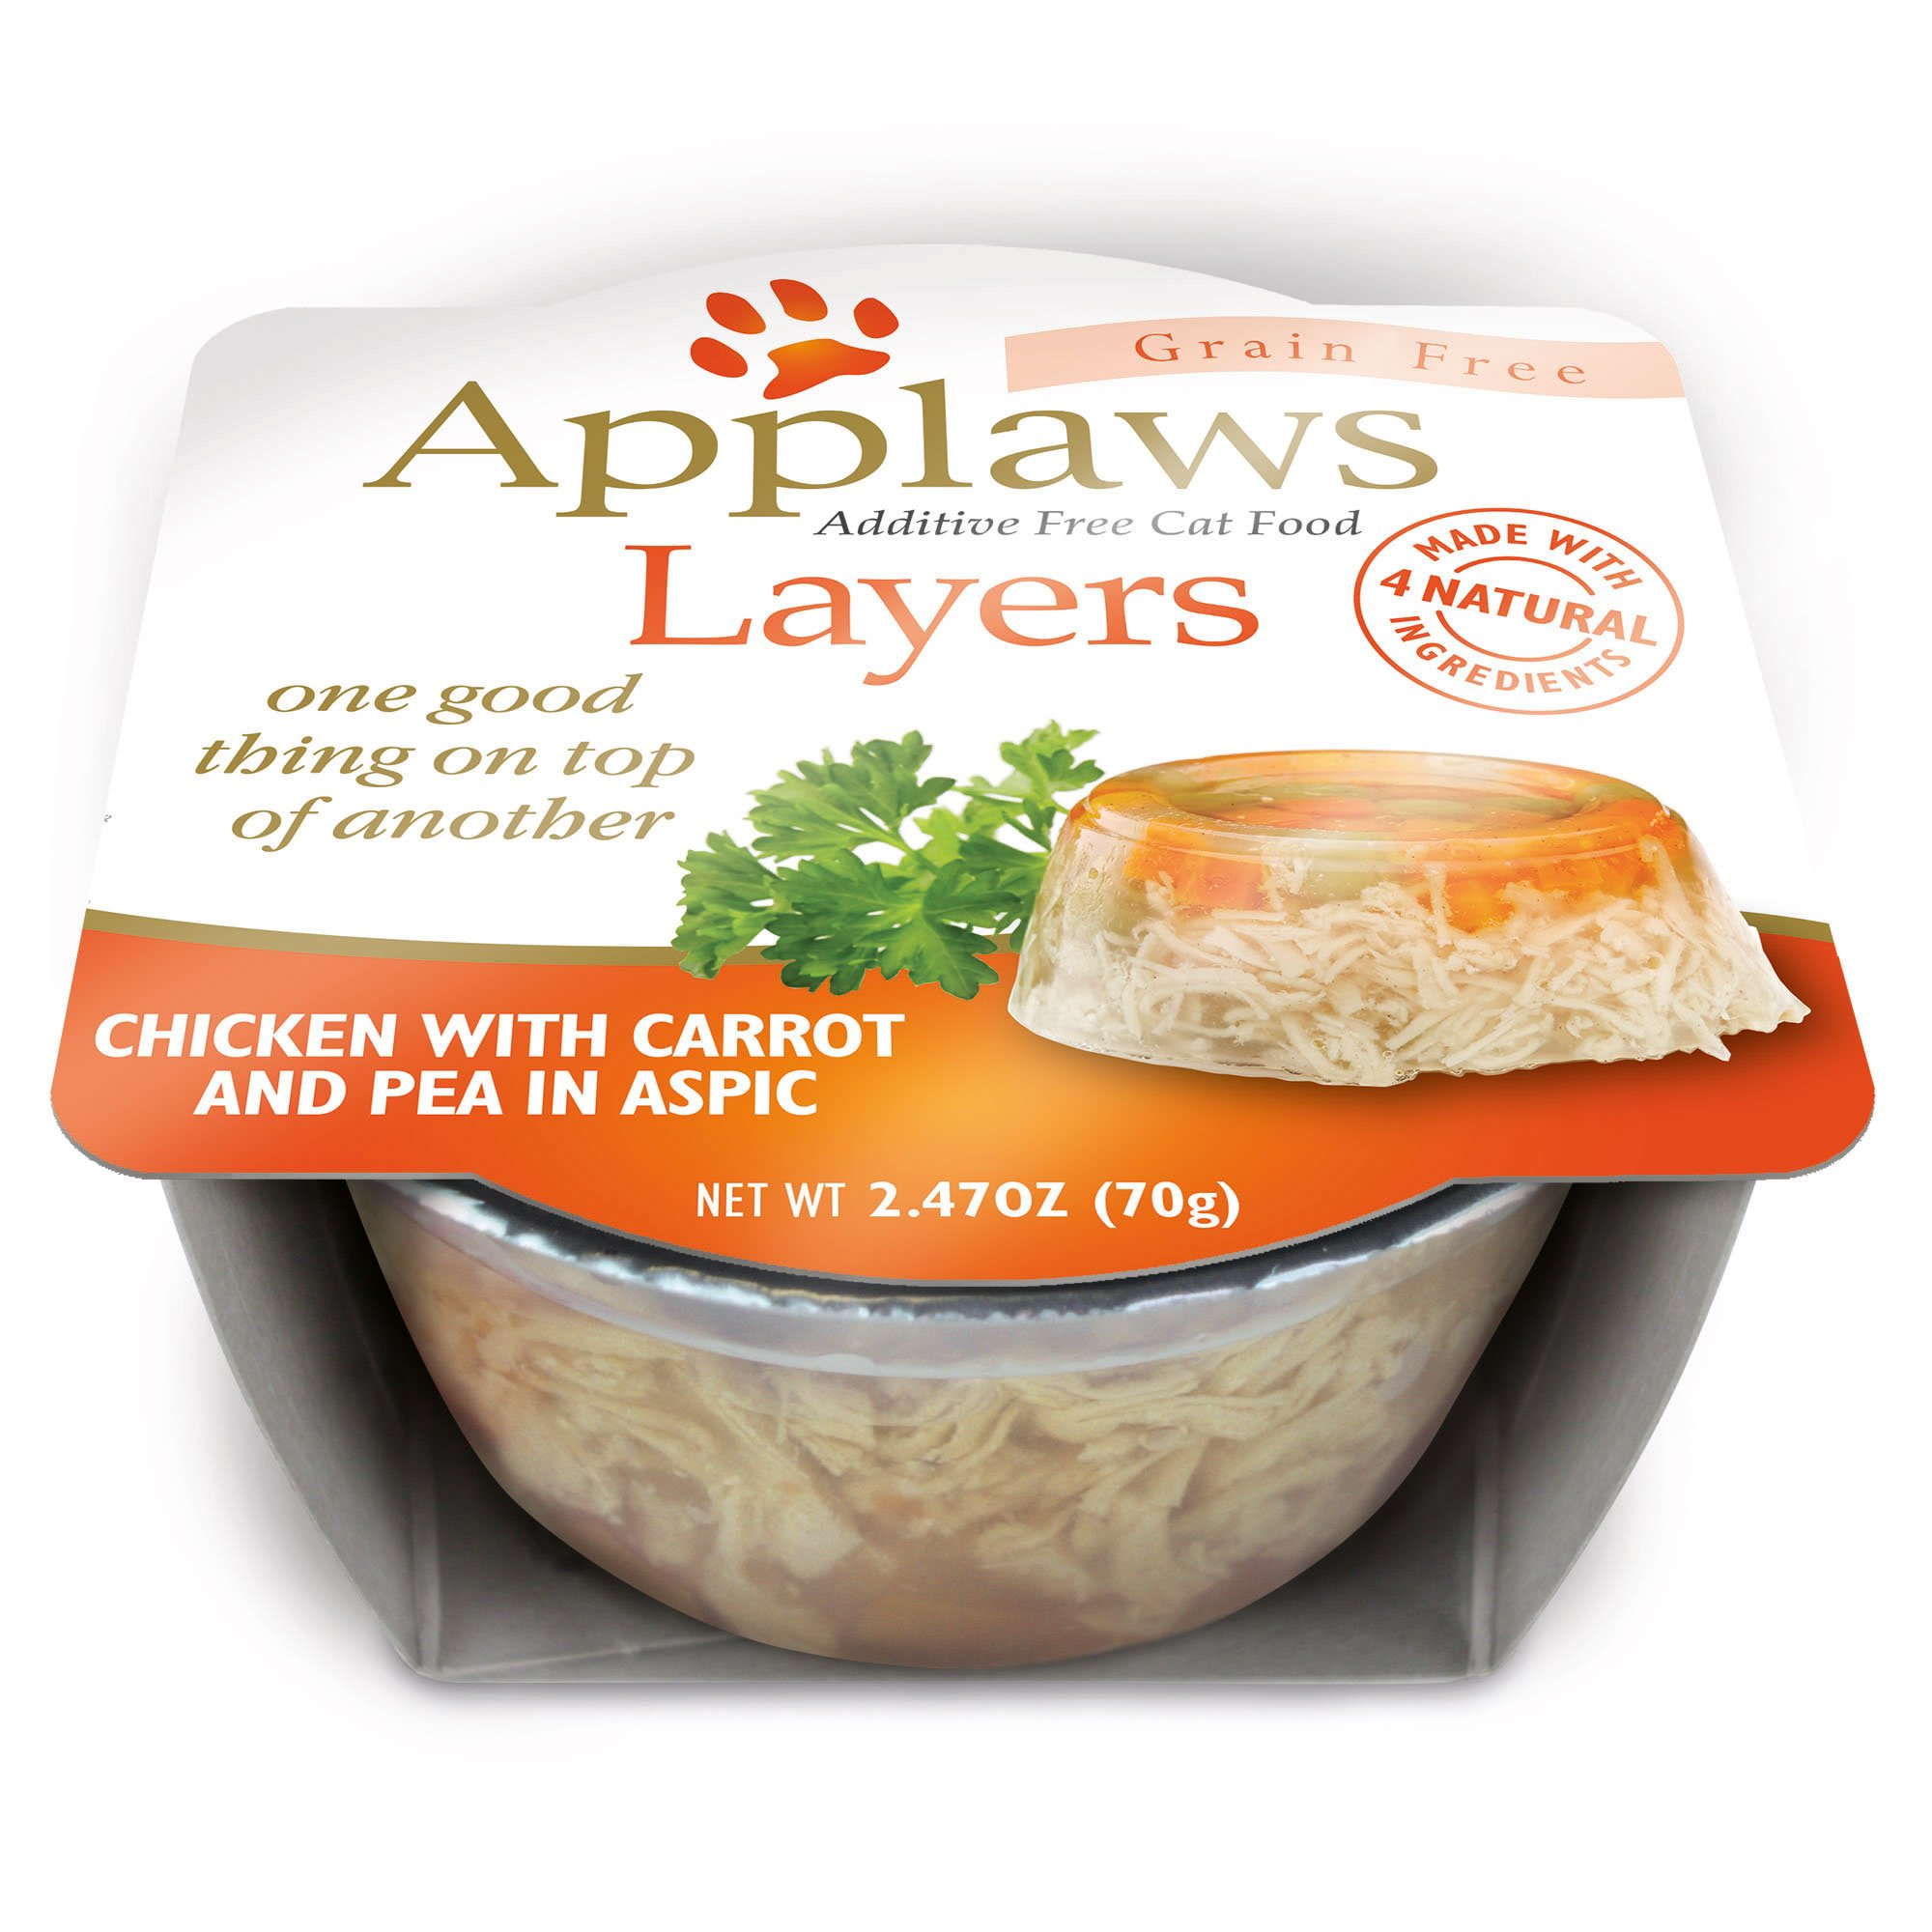 Applaws Chicken with Carrot and Peas Layers Grain Free Cat Food